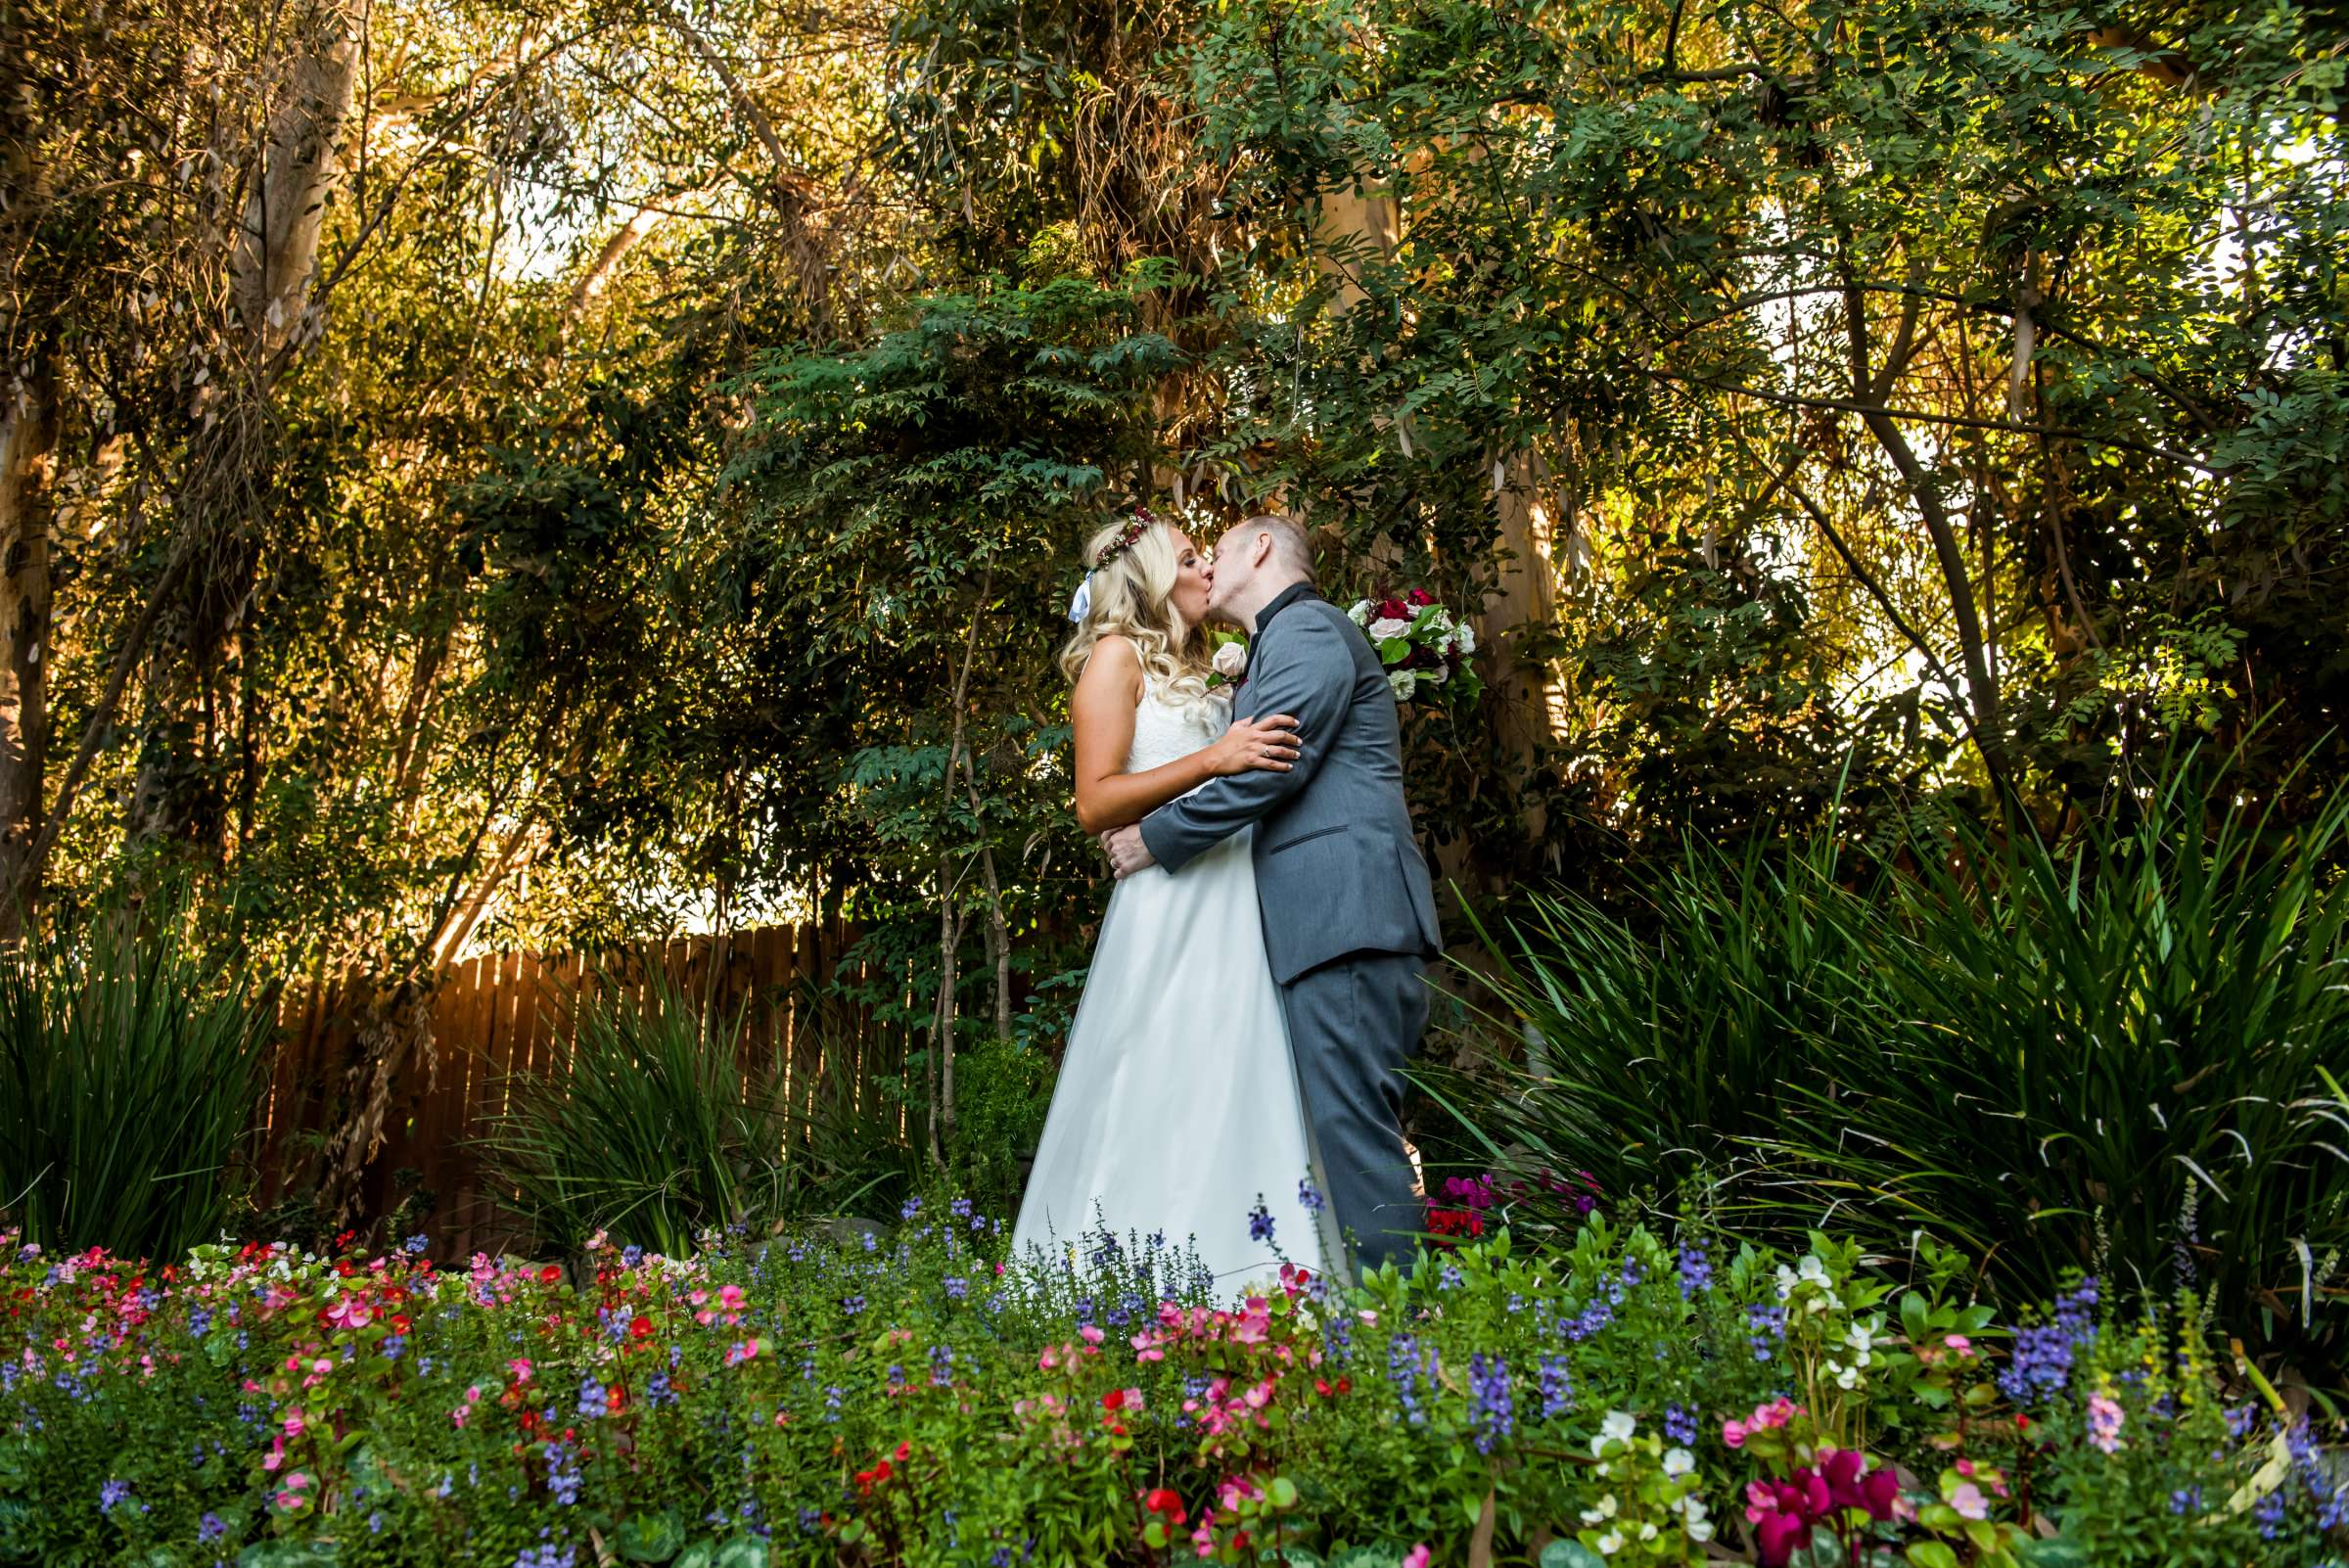 Twin Oaks House & Gardens Wedding Estate Wedding, Brittany and Sean Wedding Photo #14 by True Photography